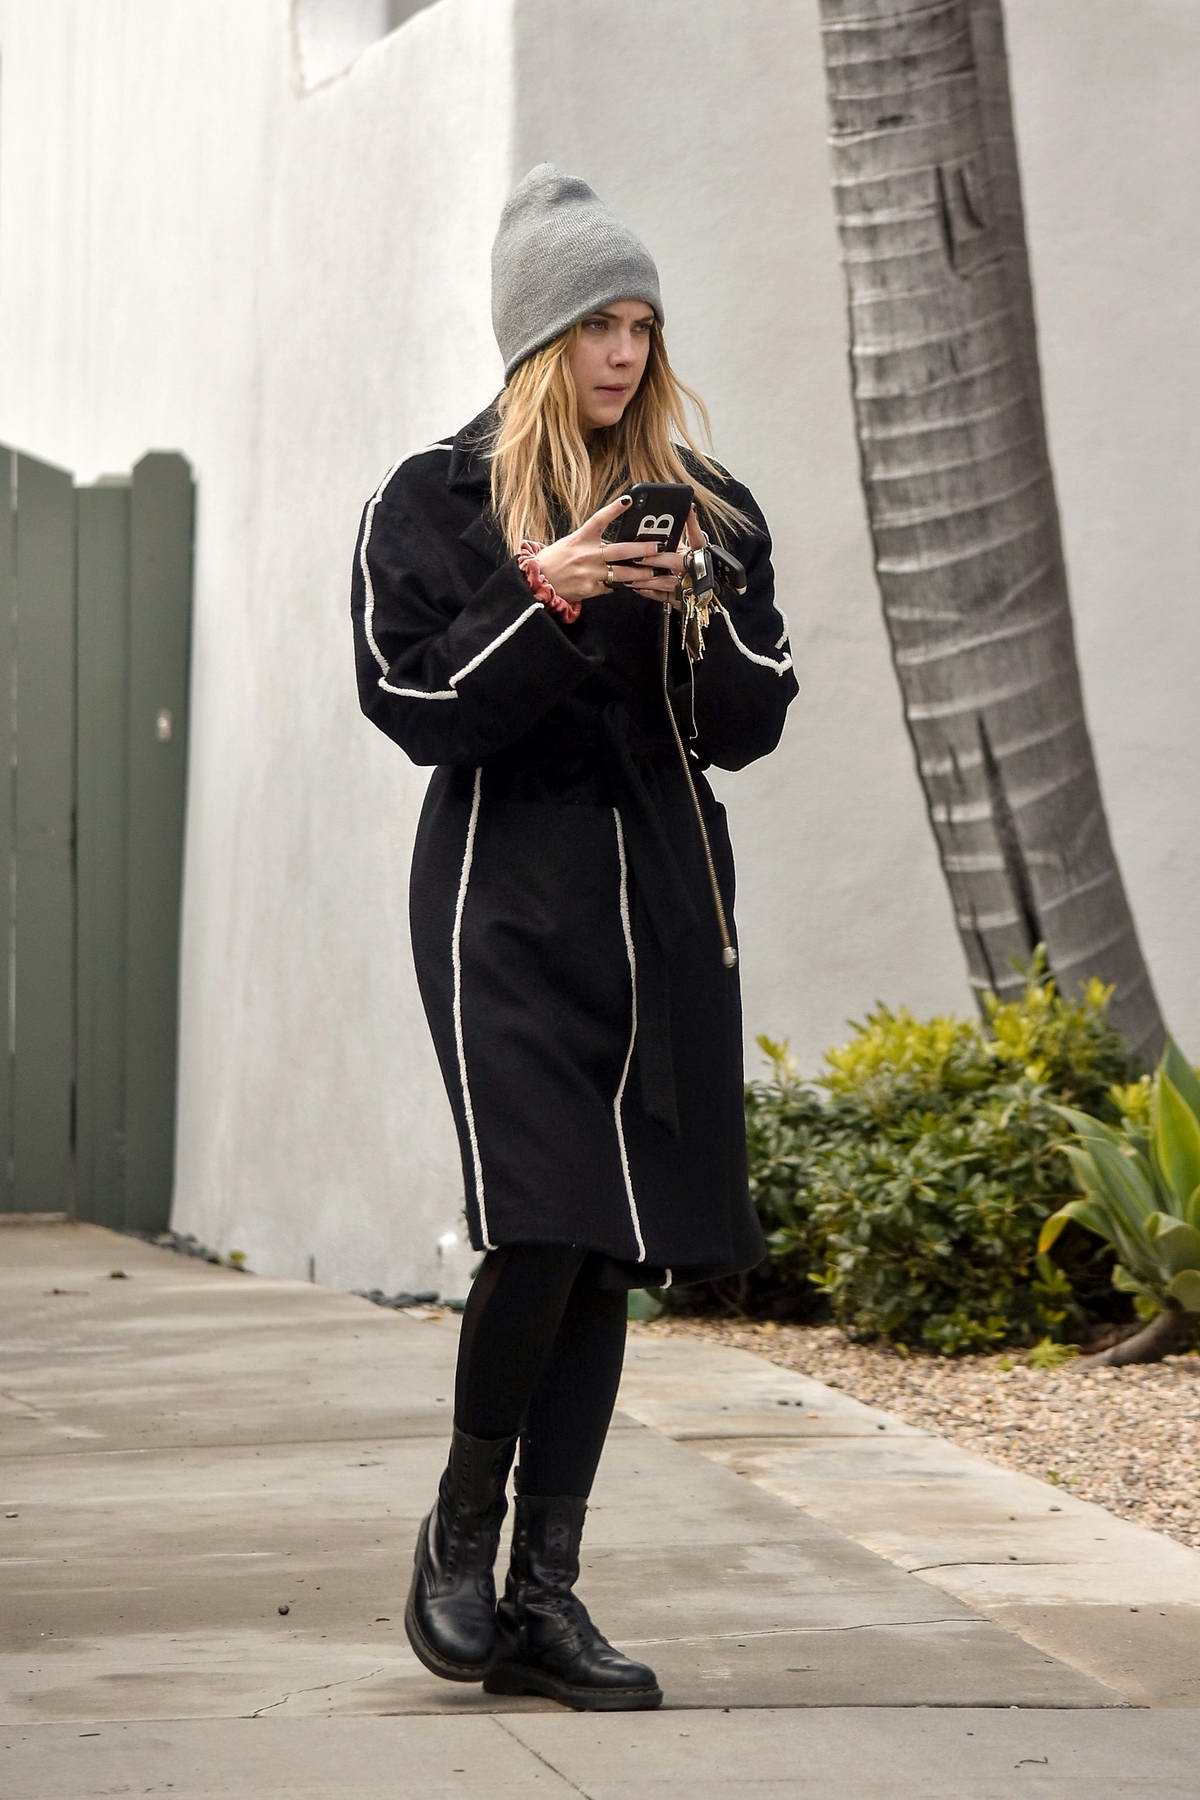 Ashley Benson receives a parking ticket while visiting a friend in West Hollywood, Los Angeles